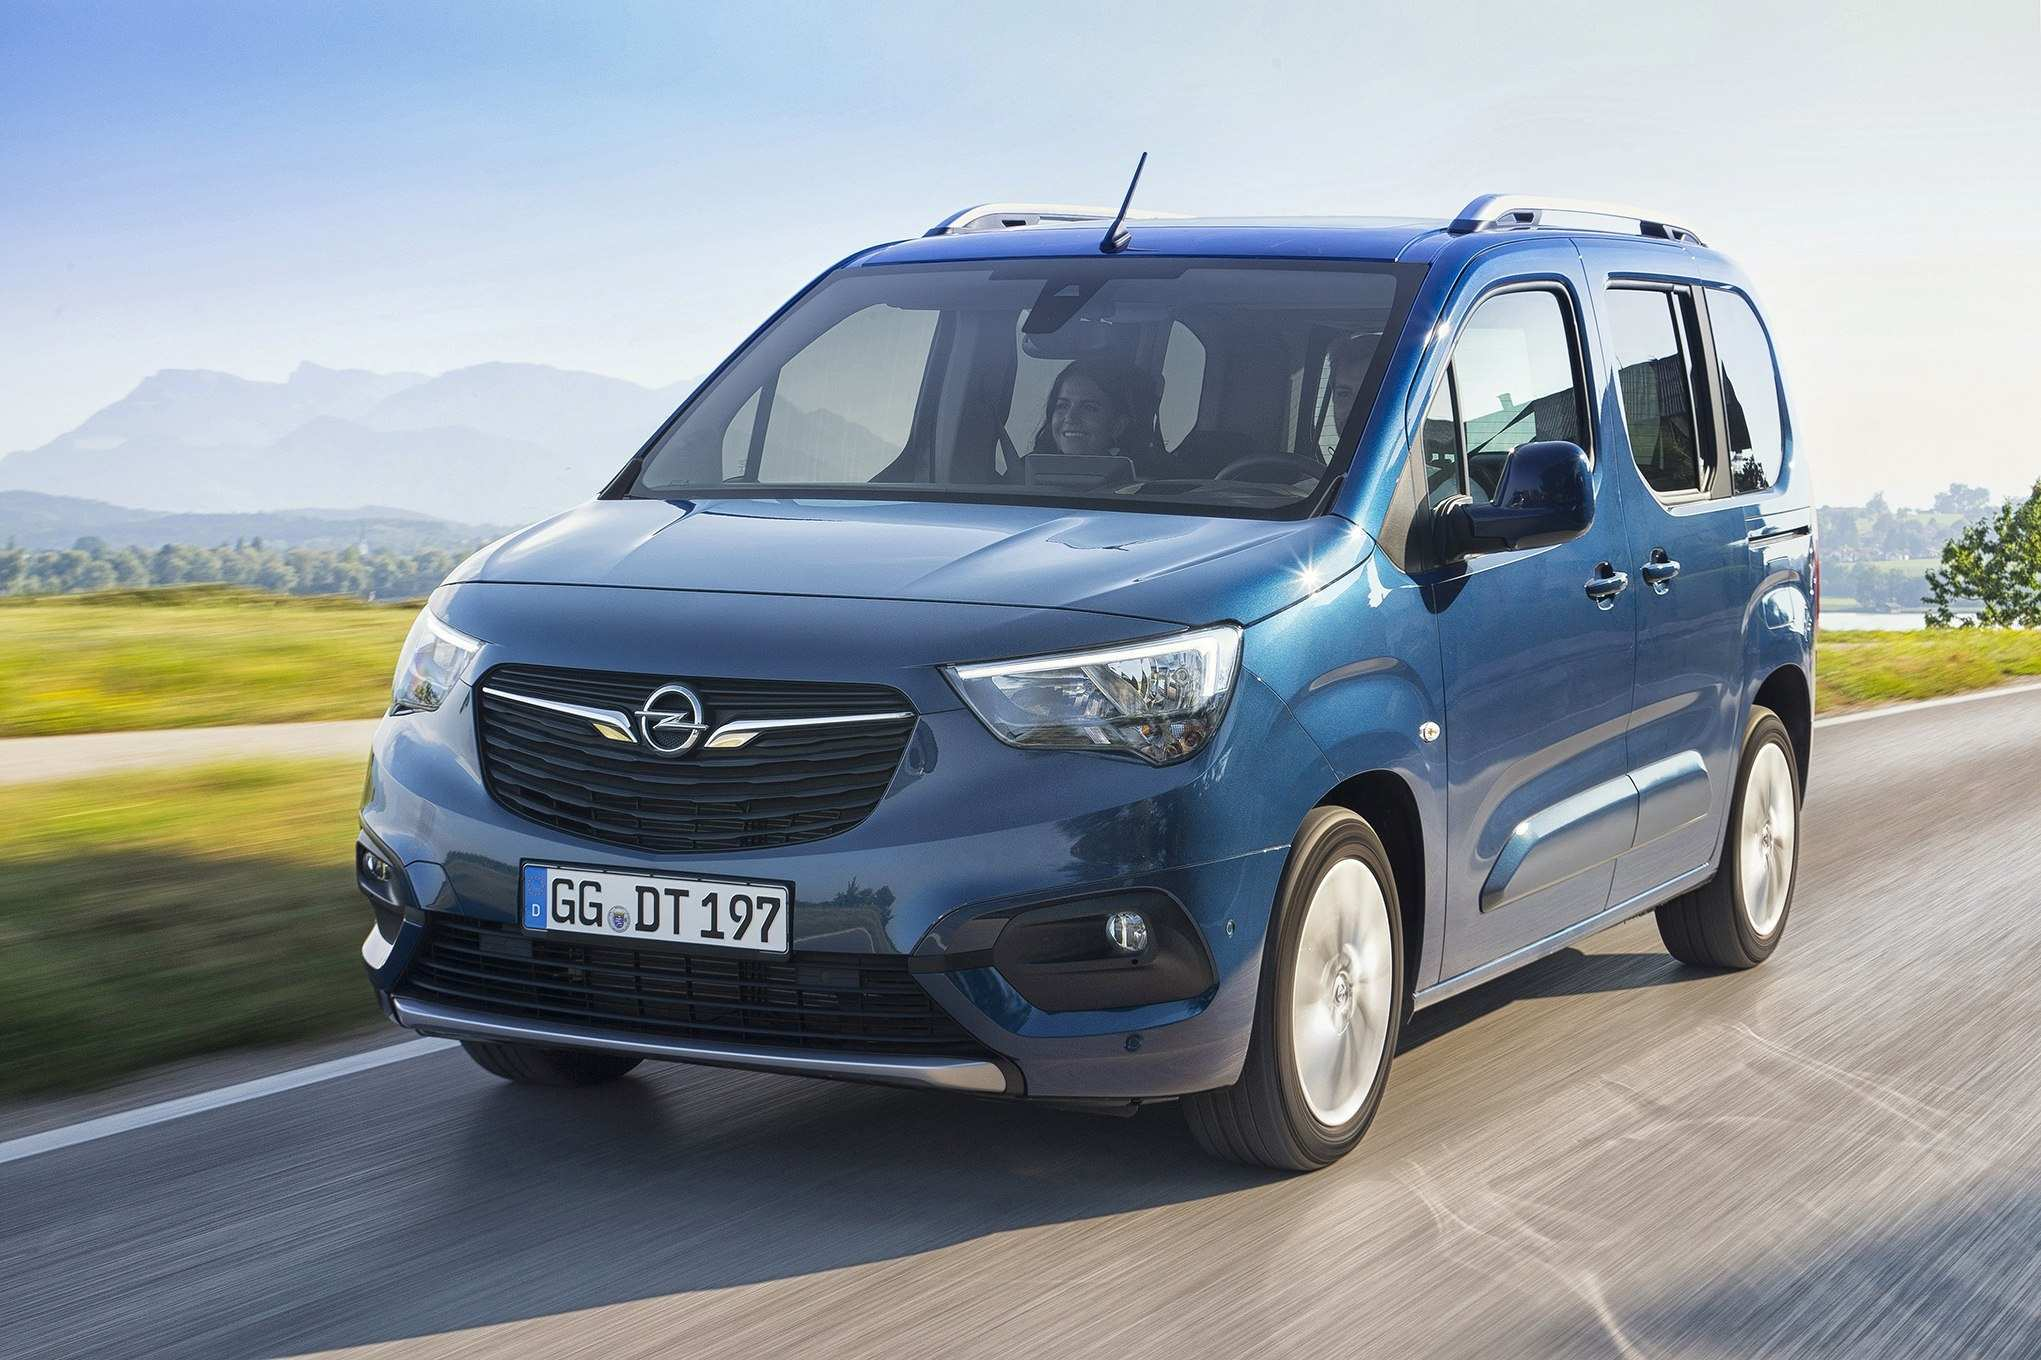 95 Gallery of Opel Autos Bis 2020 Pictures by Opel Autos Bis 2020